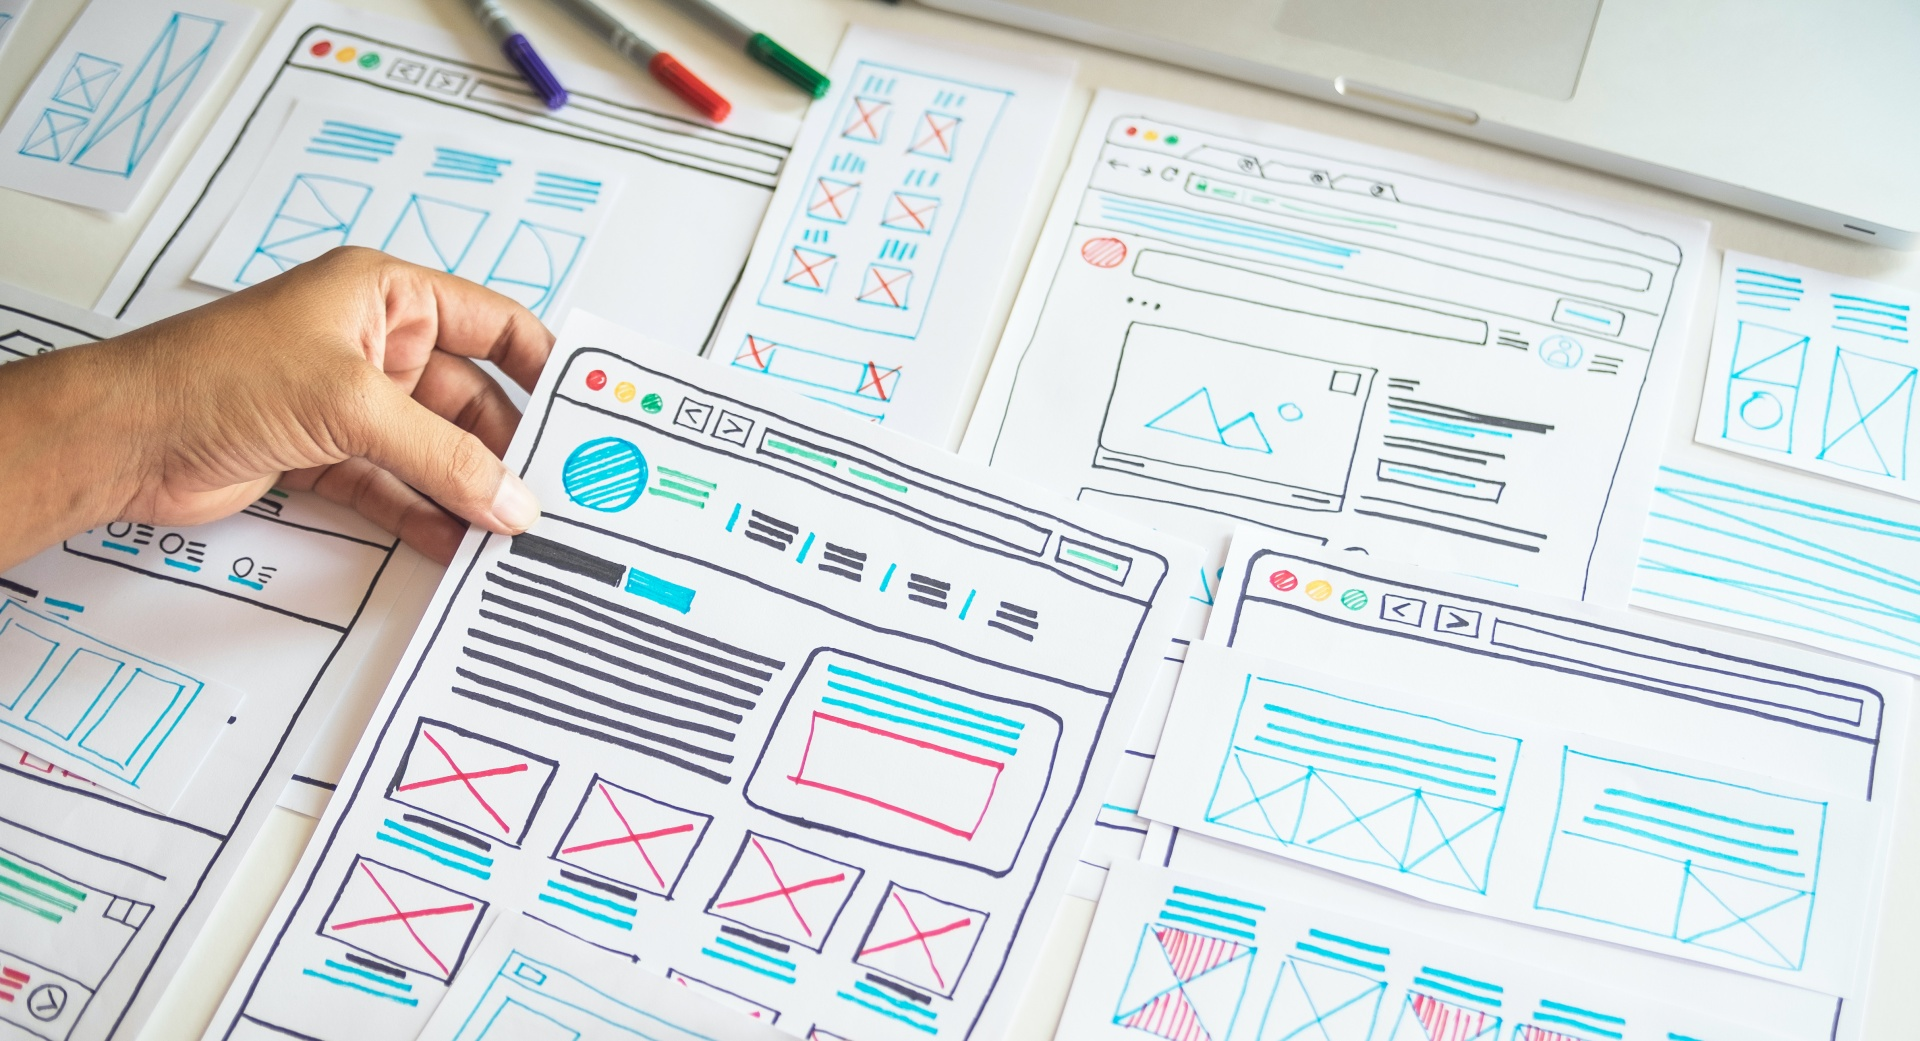 Hand drawn web design templates